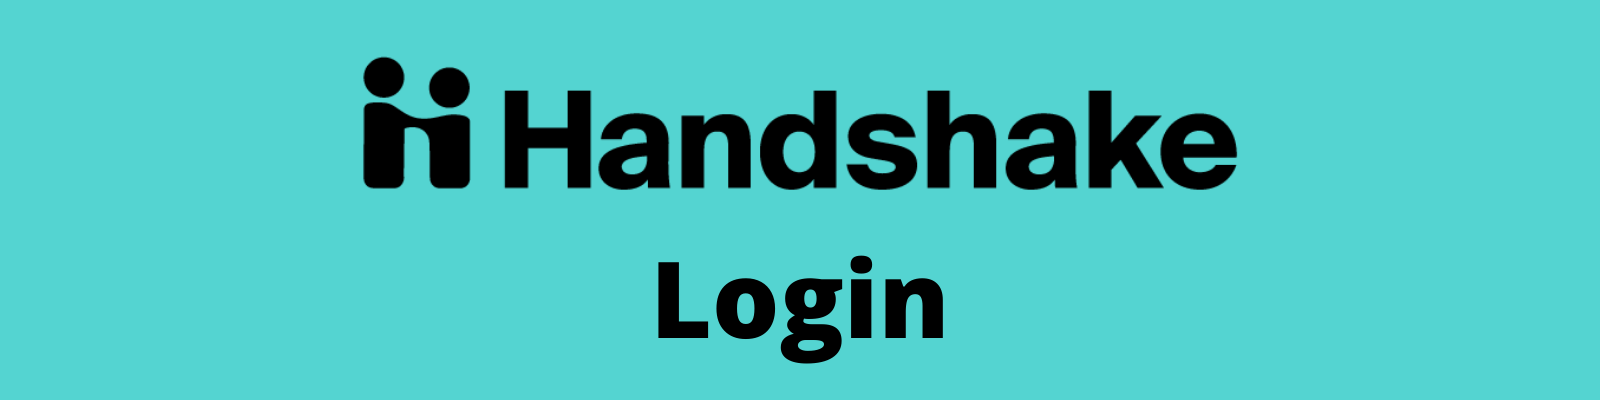 Handshake Login Button